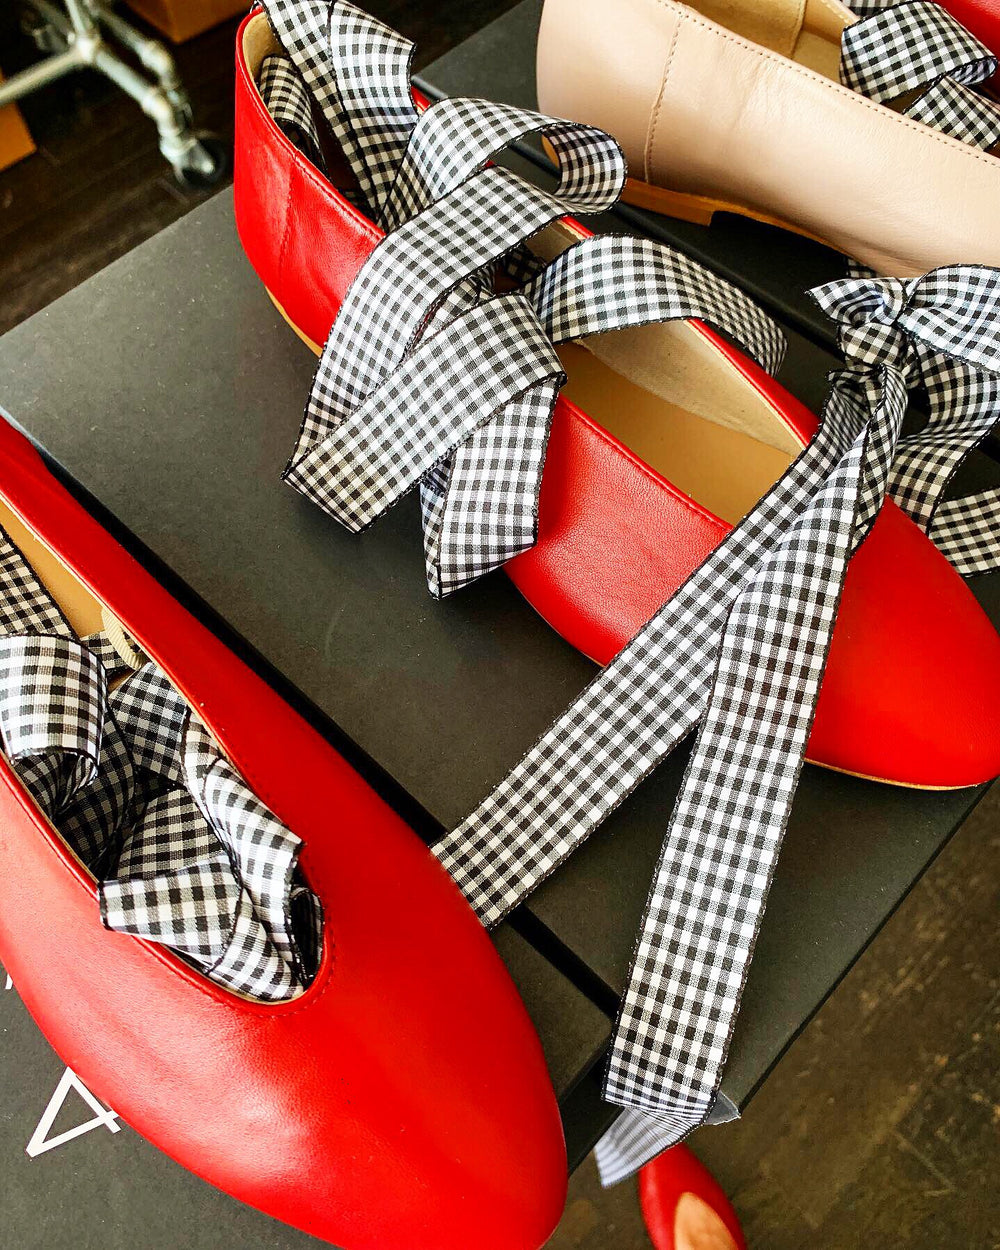 Frock x A. Soliani Ballet Flat - The Frock NYC